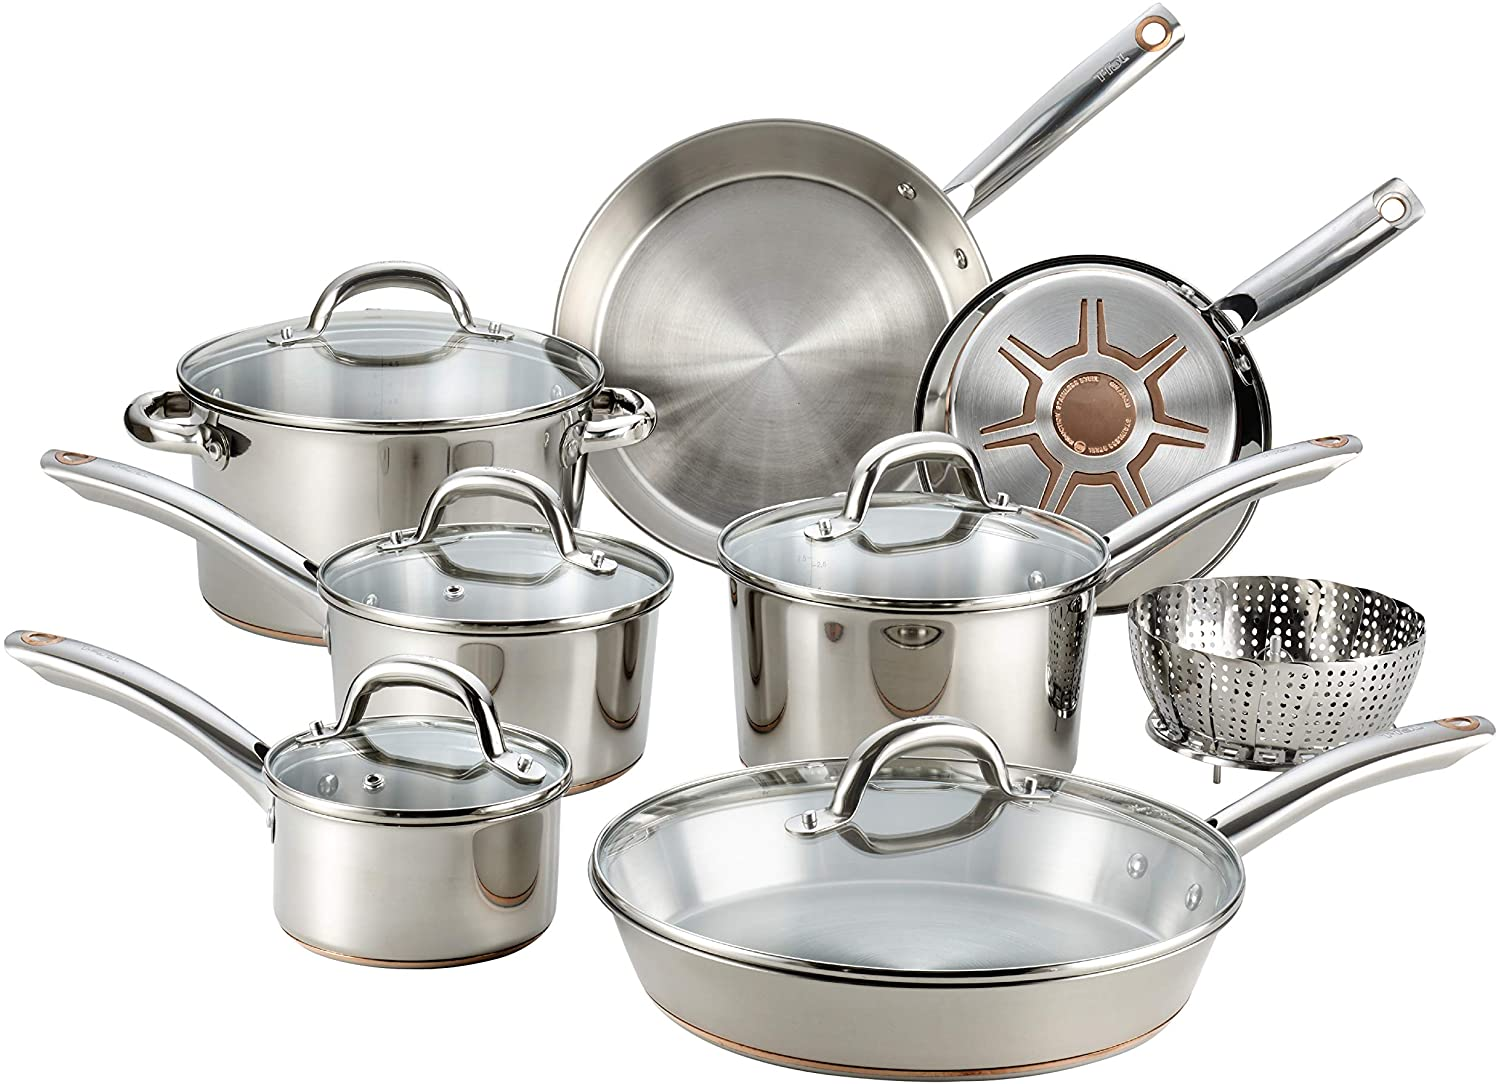 T-fal Copper Bottom Stainless Steel Cookware Set